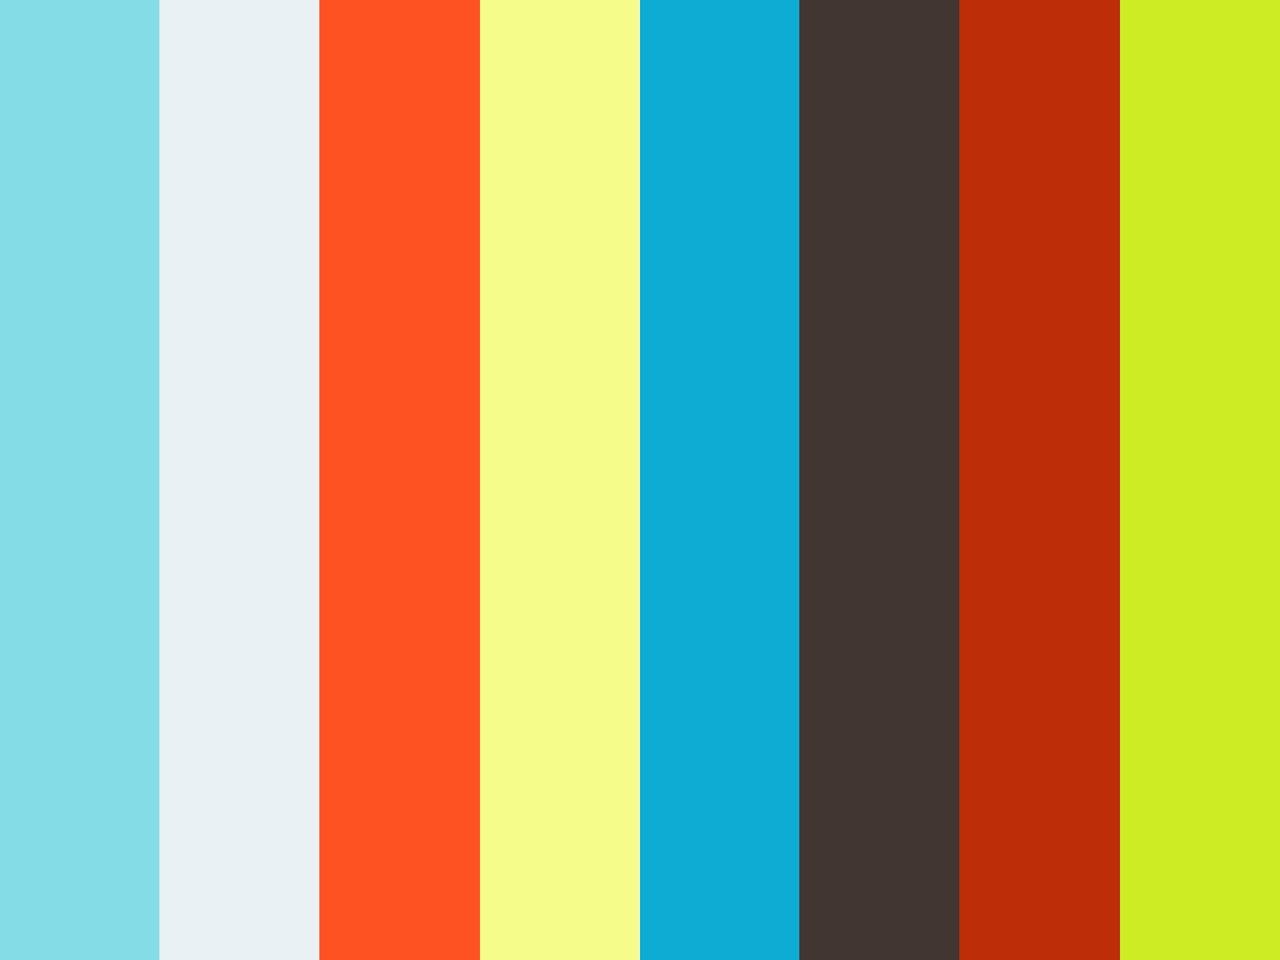 November 17, 2016 Board of Supervisors Meeting